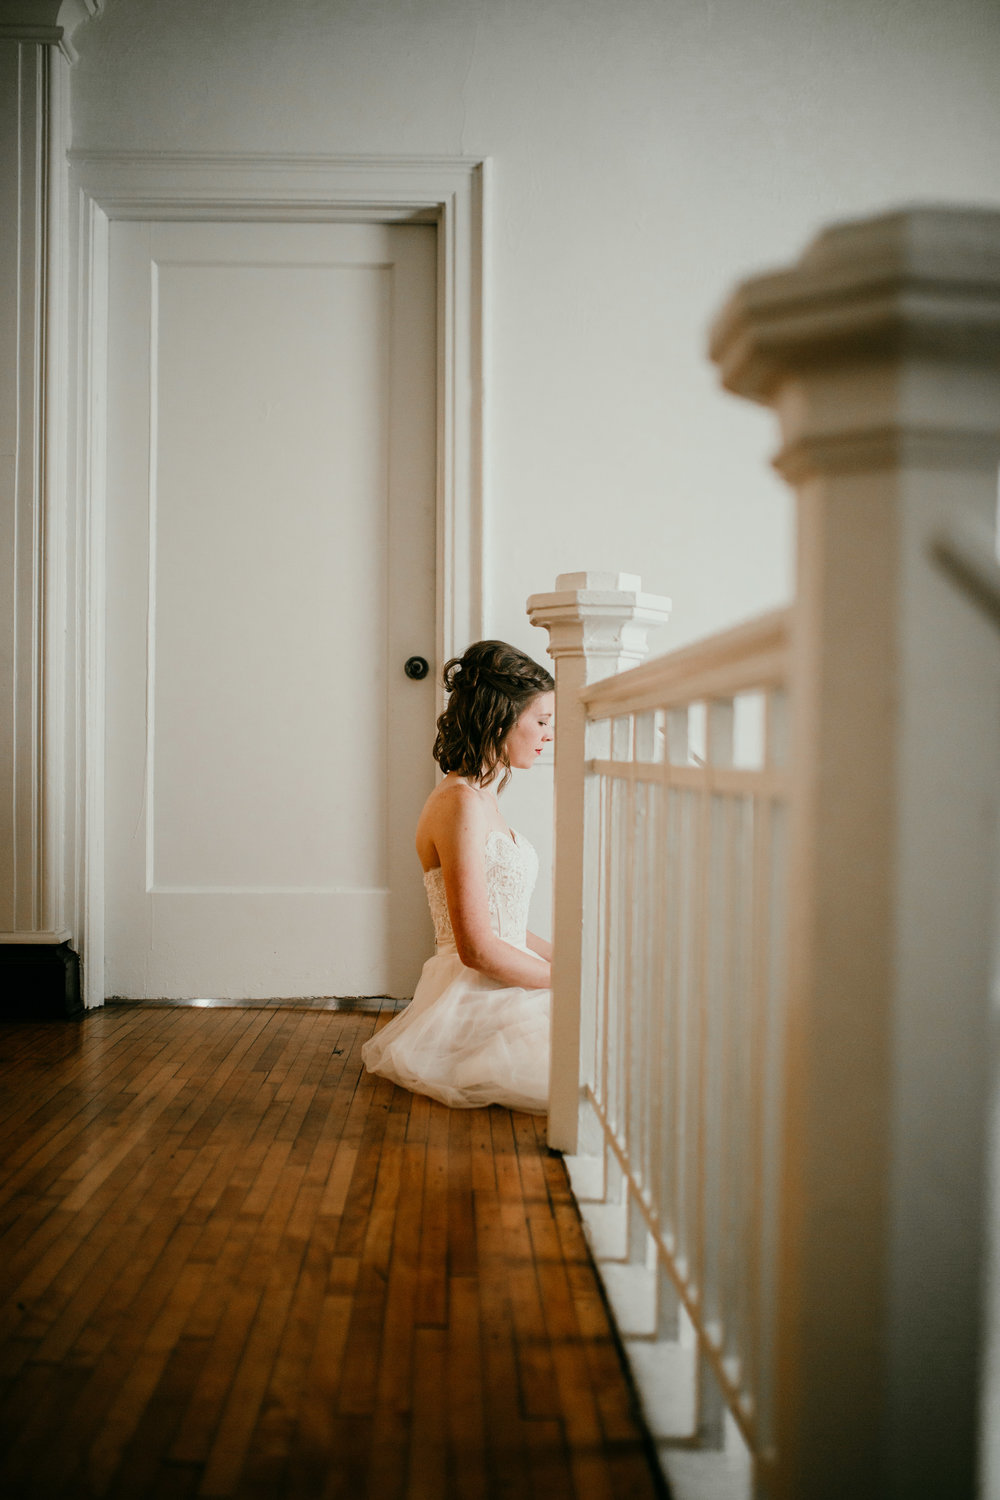 Bridal portrait in the Stairwell | Shelbie & Jospeh's Summer Love Story : Kansas City Wedding | Hanna Hill Photography